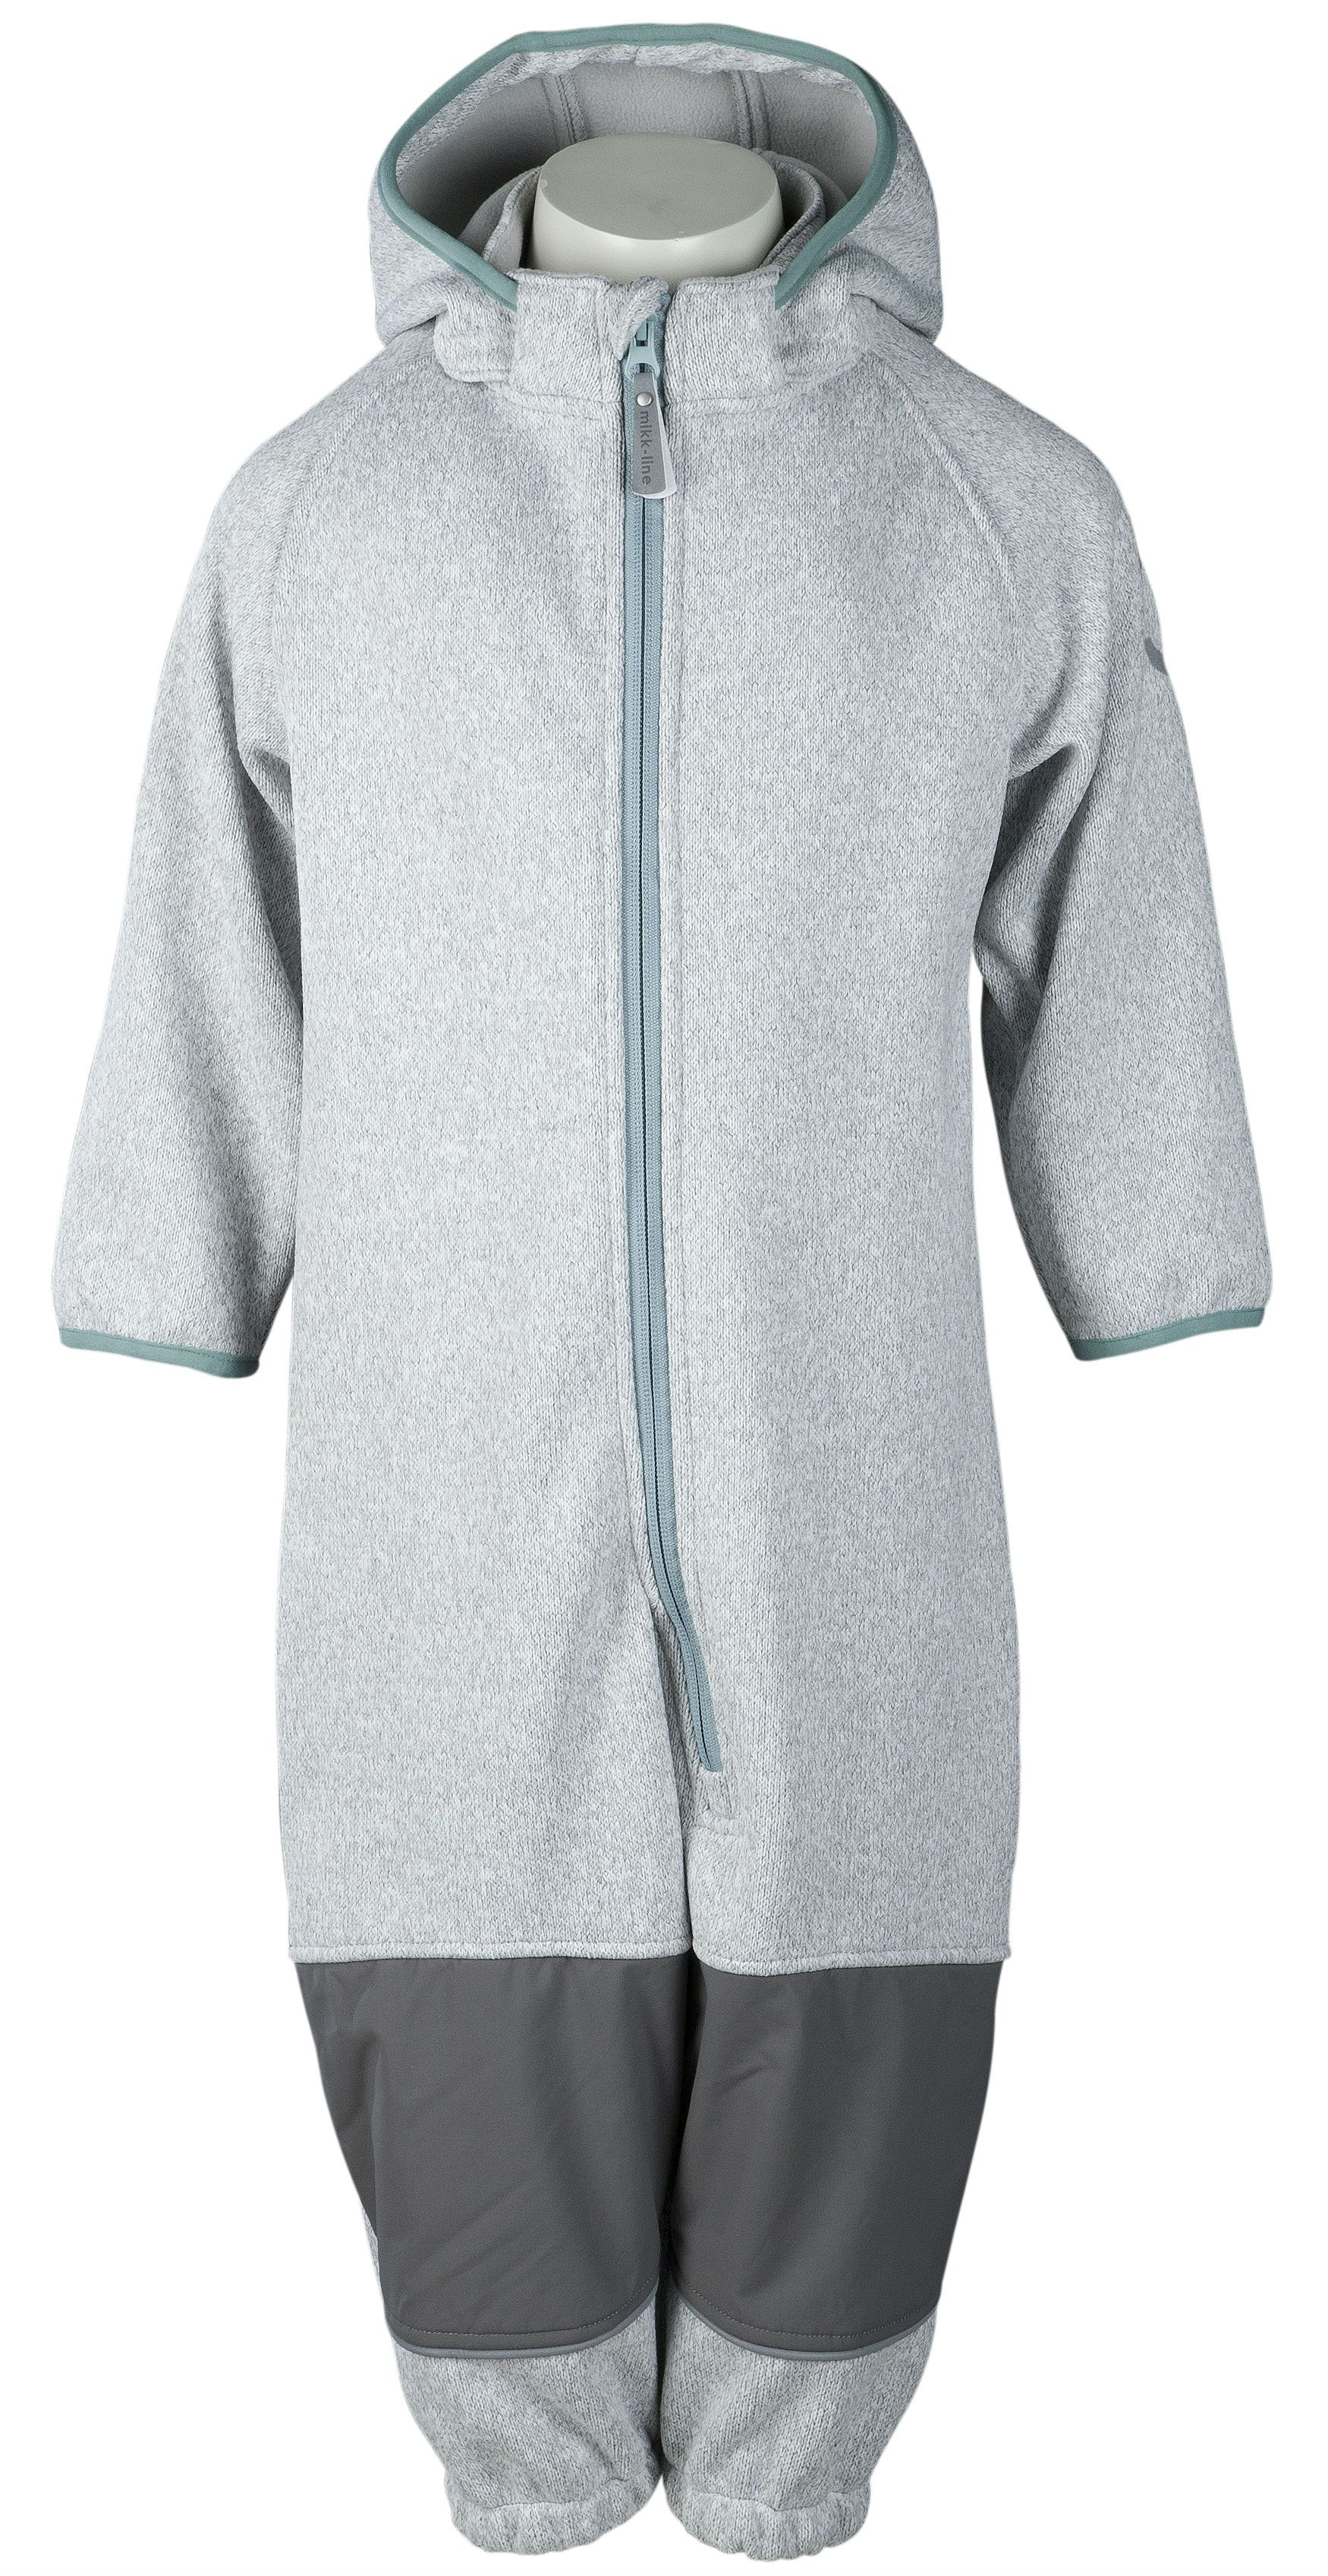 Image of Softshell dragt fra Mikk-Line - Mint Melange (16003-226)